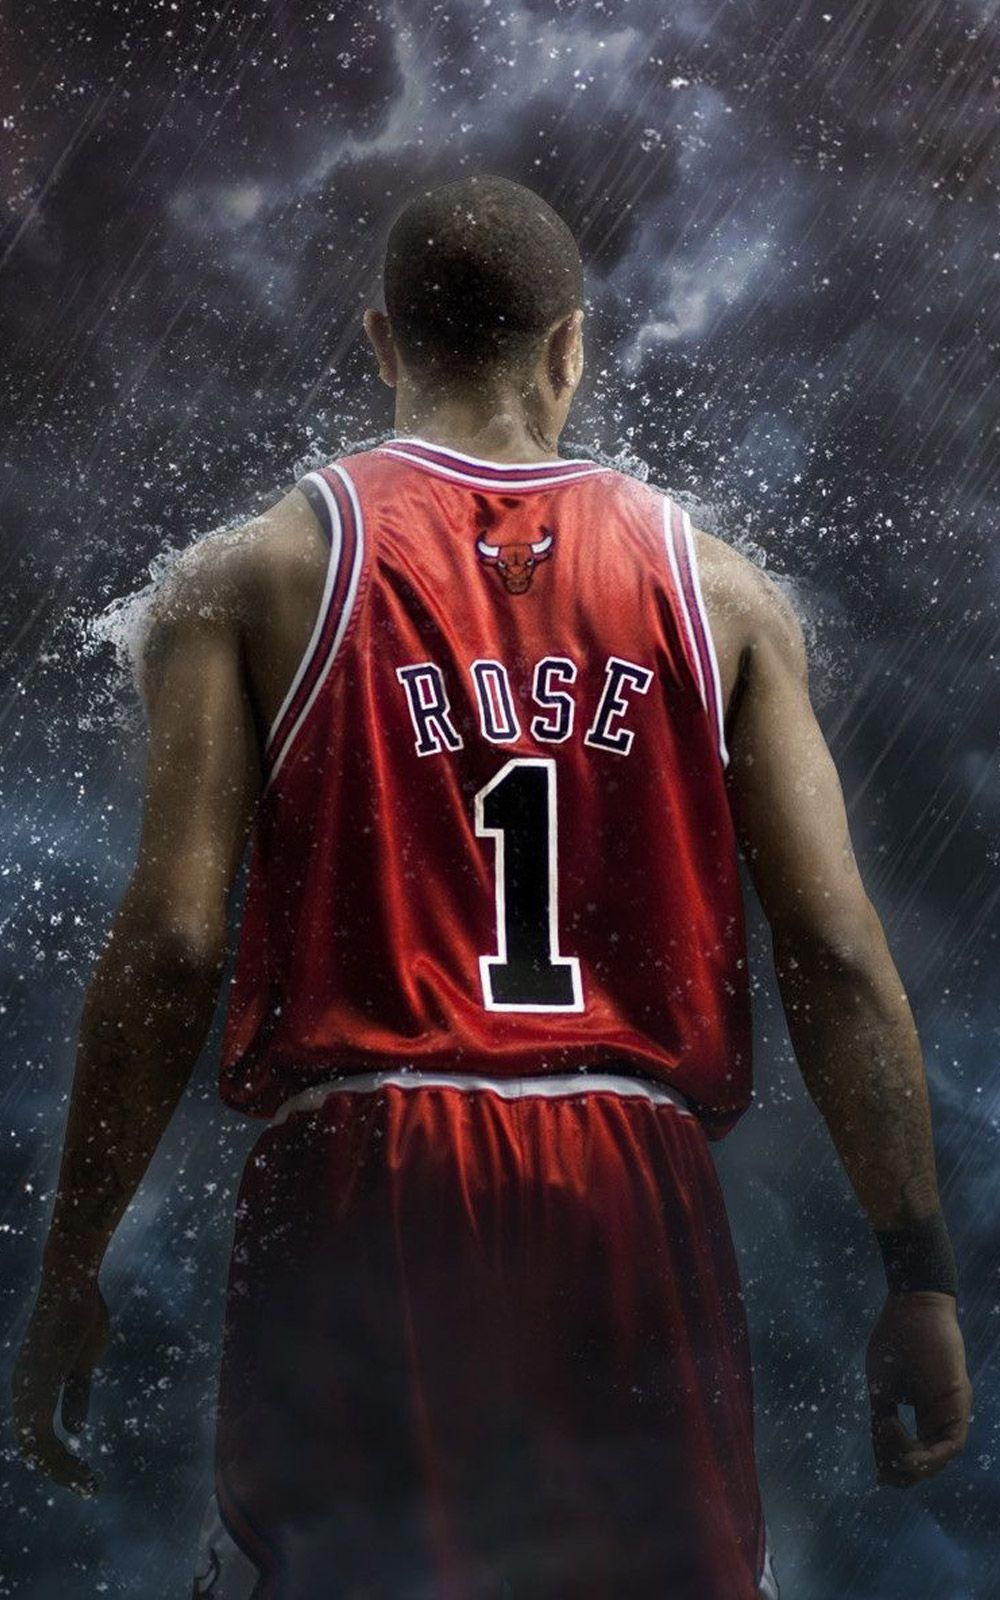 Mobilewallpapero Com Wp Content Uploads   Derrick Rose Wallpaper Jpg